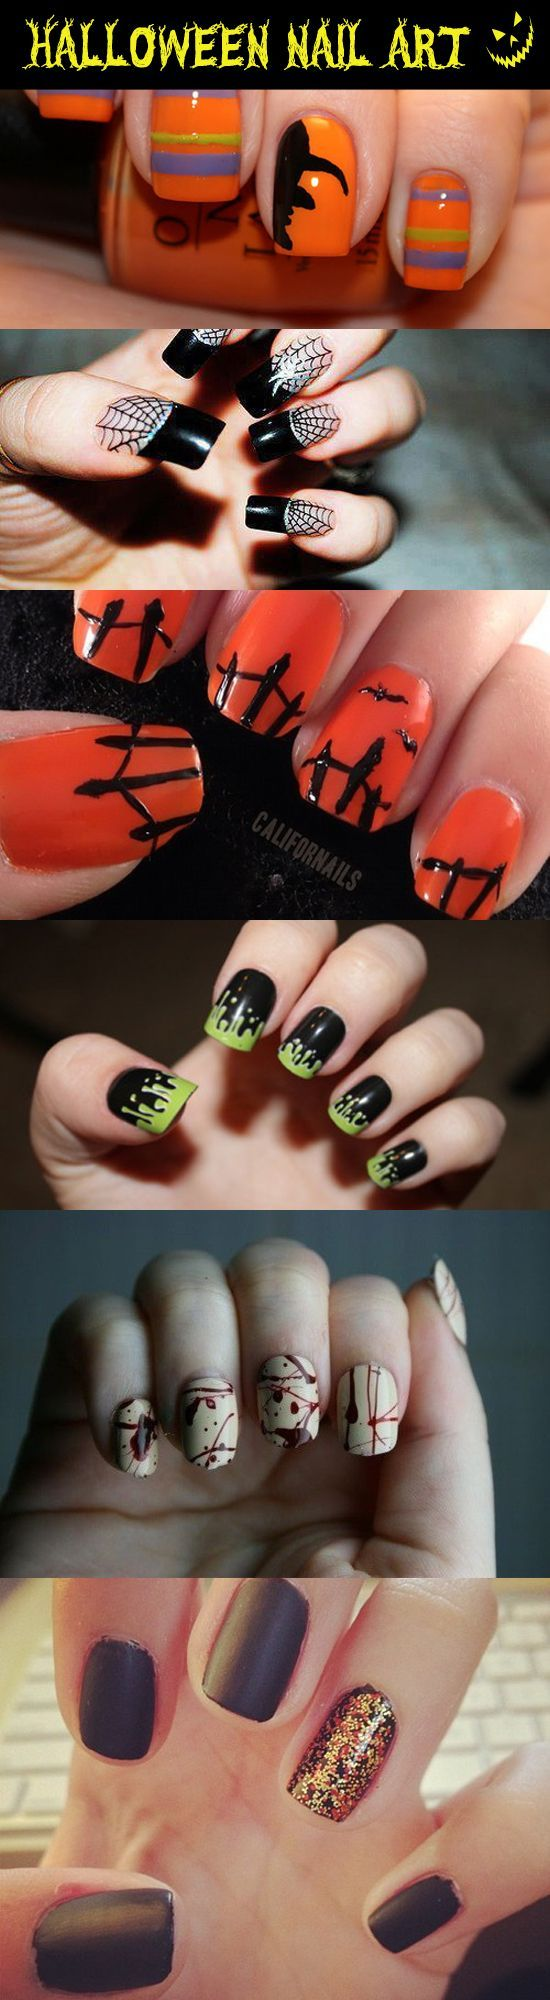 best nail art images on pinterest make up pretty nails and